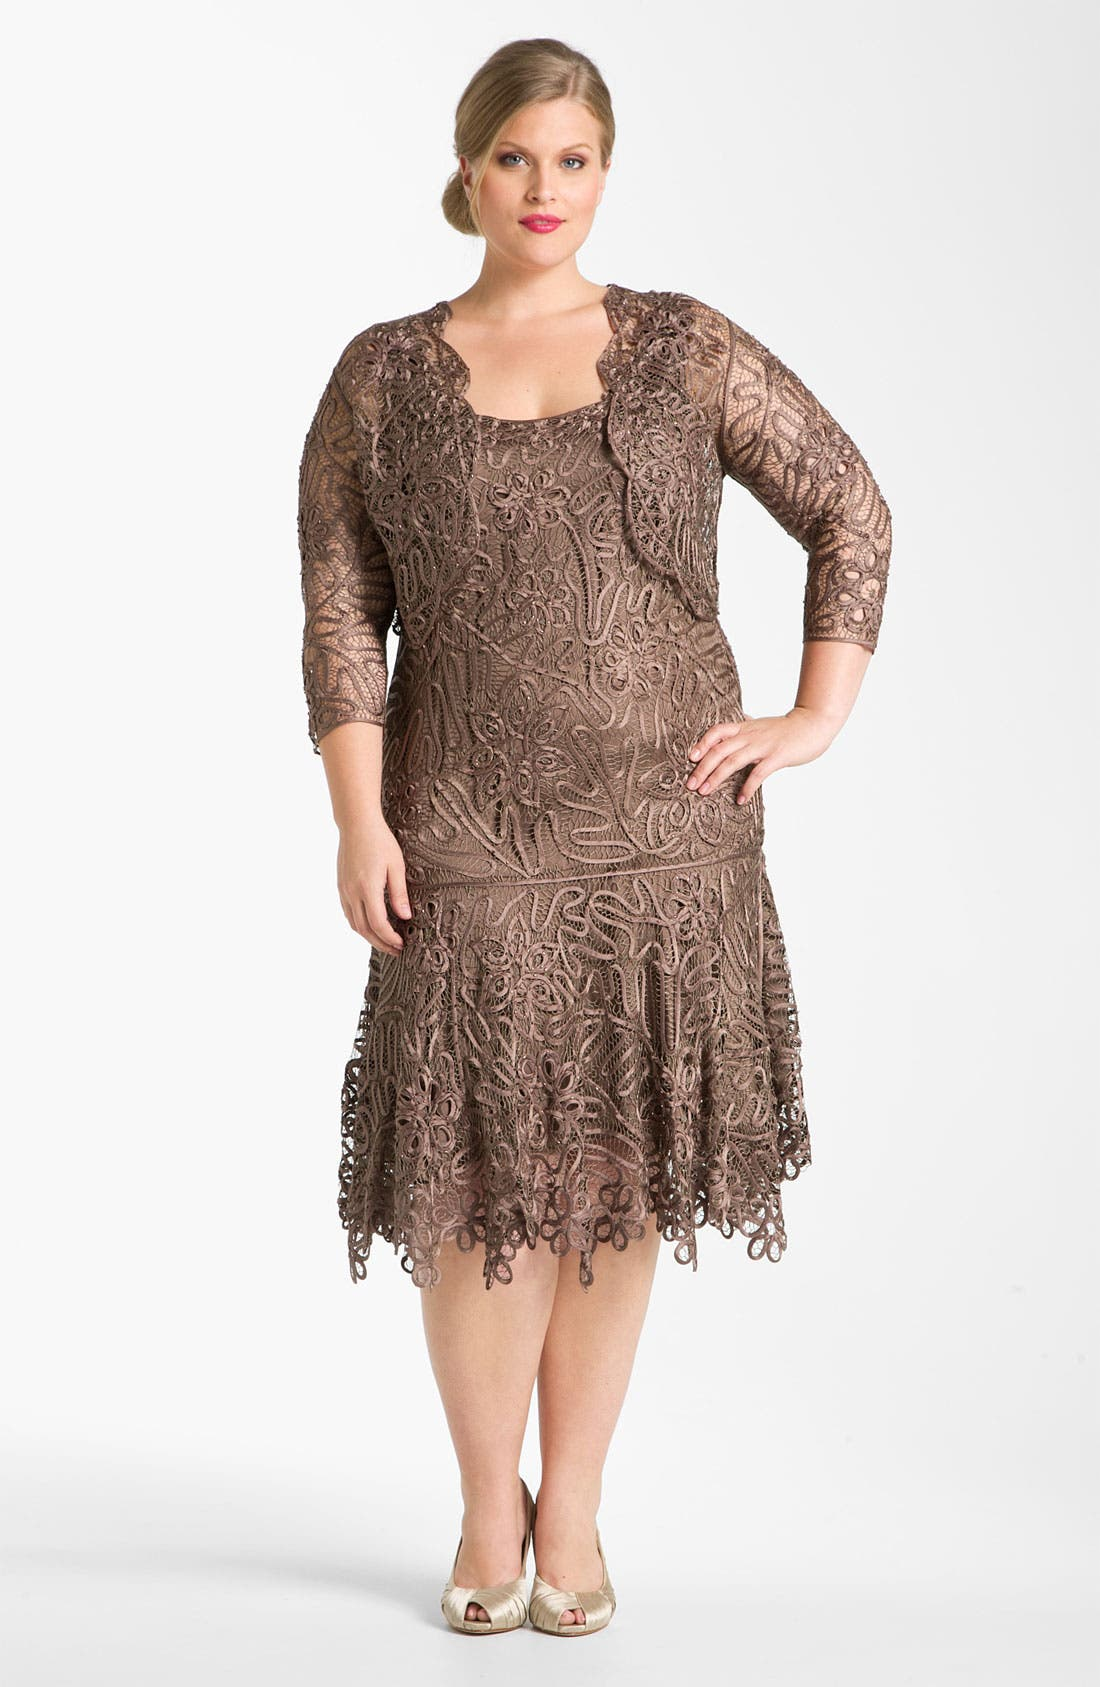 Alternate Image 1 Selected - Soulmates Beaded Crochet Silk Dress & Bolero (Plus)